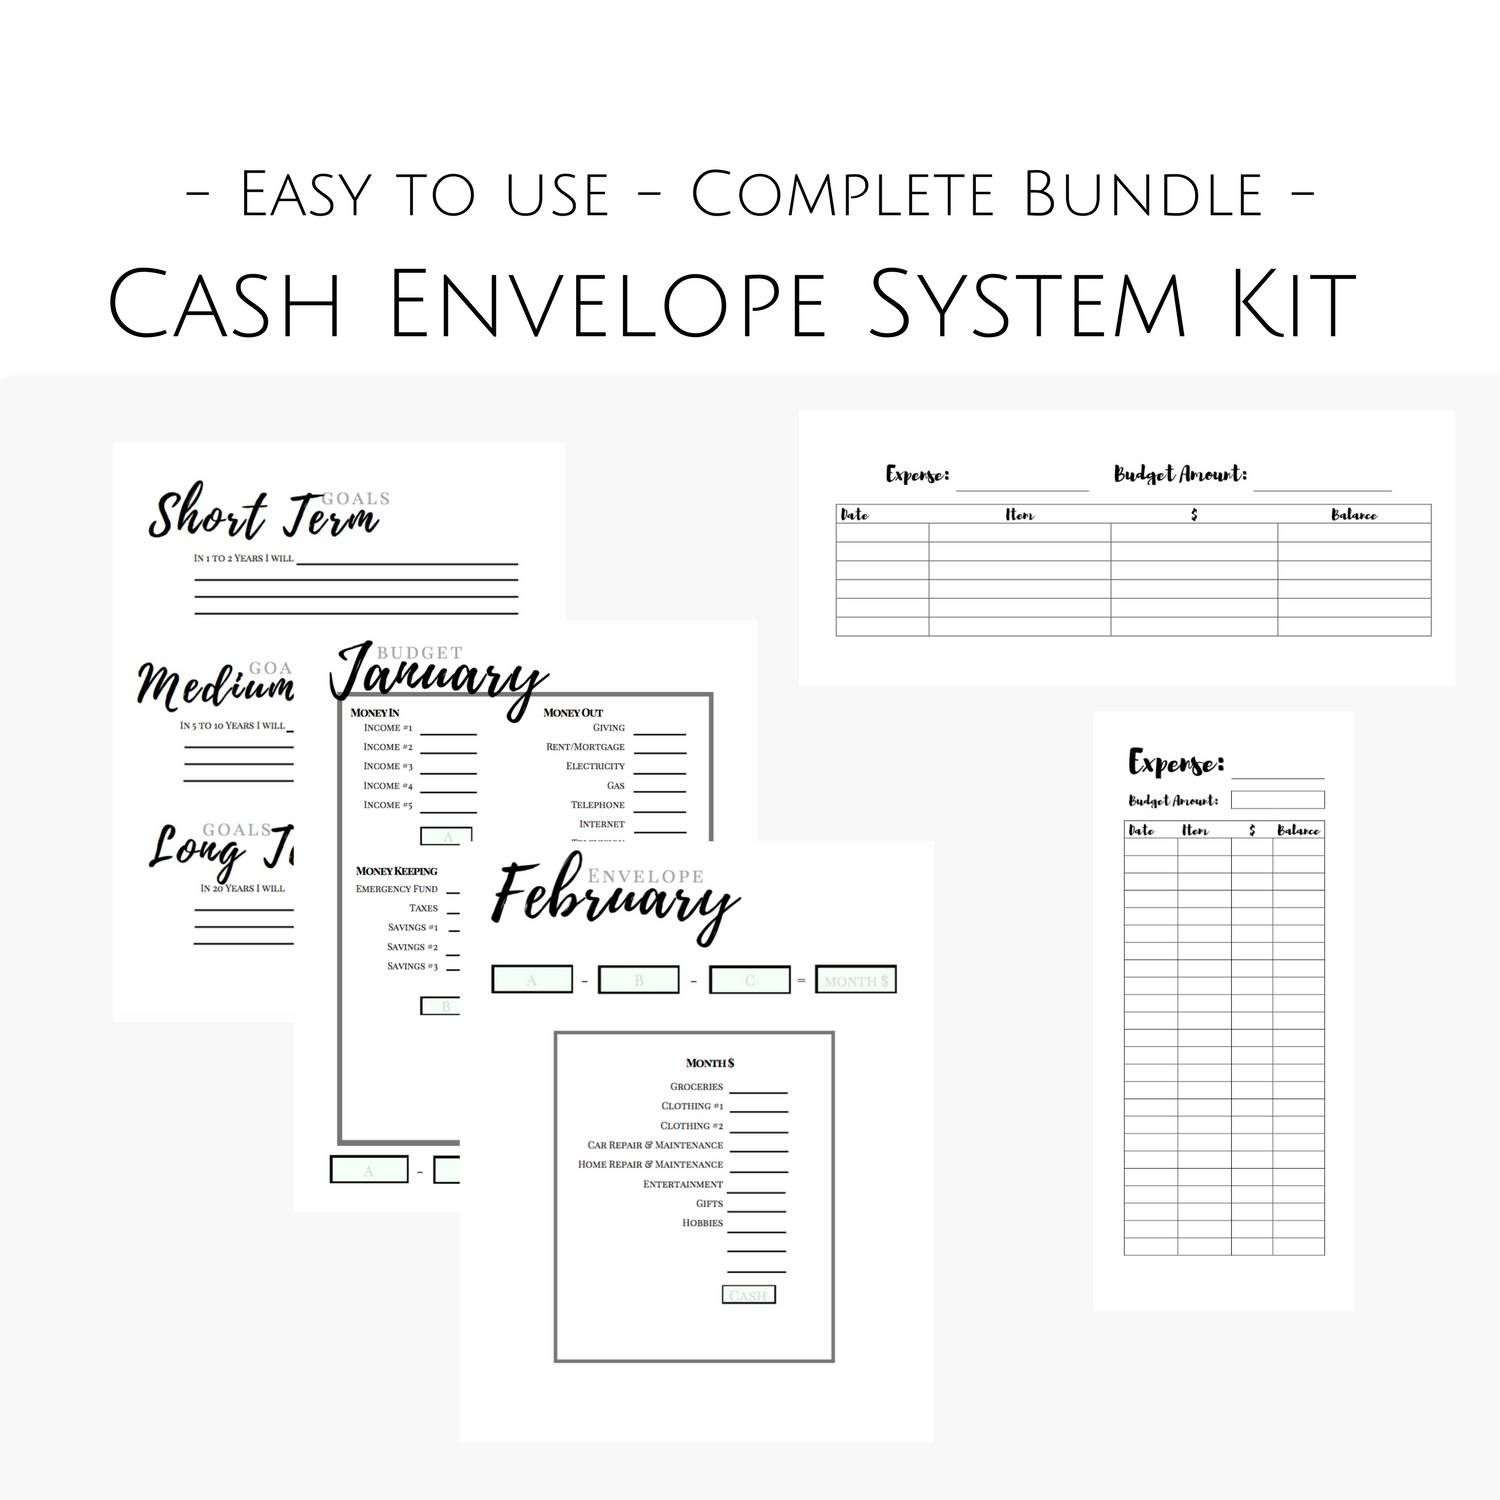 This Cash Envelope System And Finance Planner Download Is Just What You Need To Jump Start Your